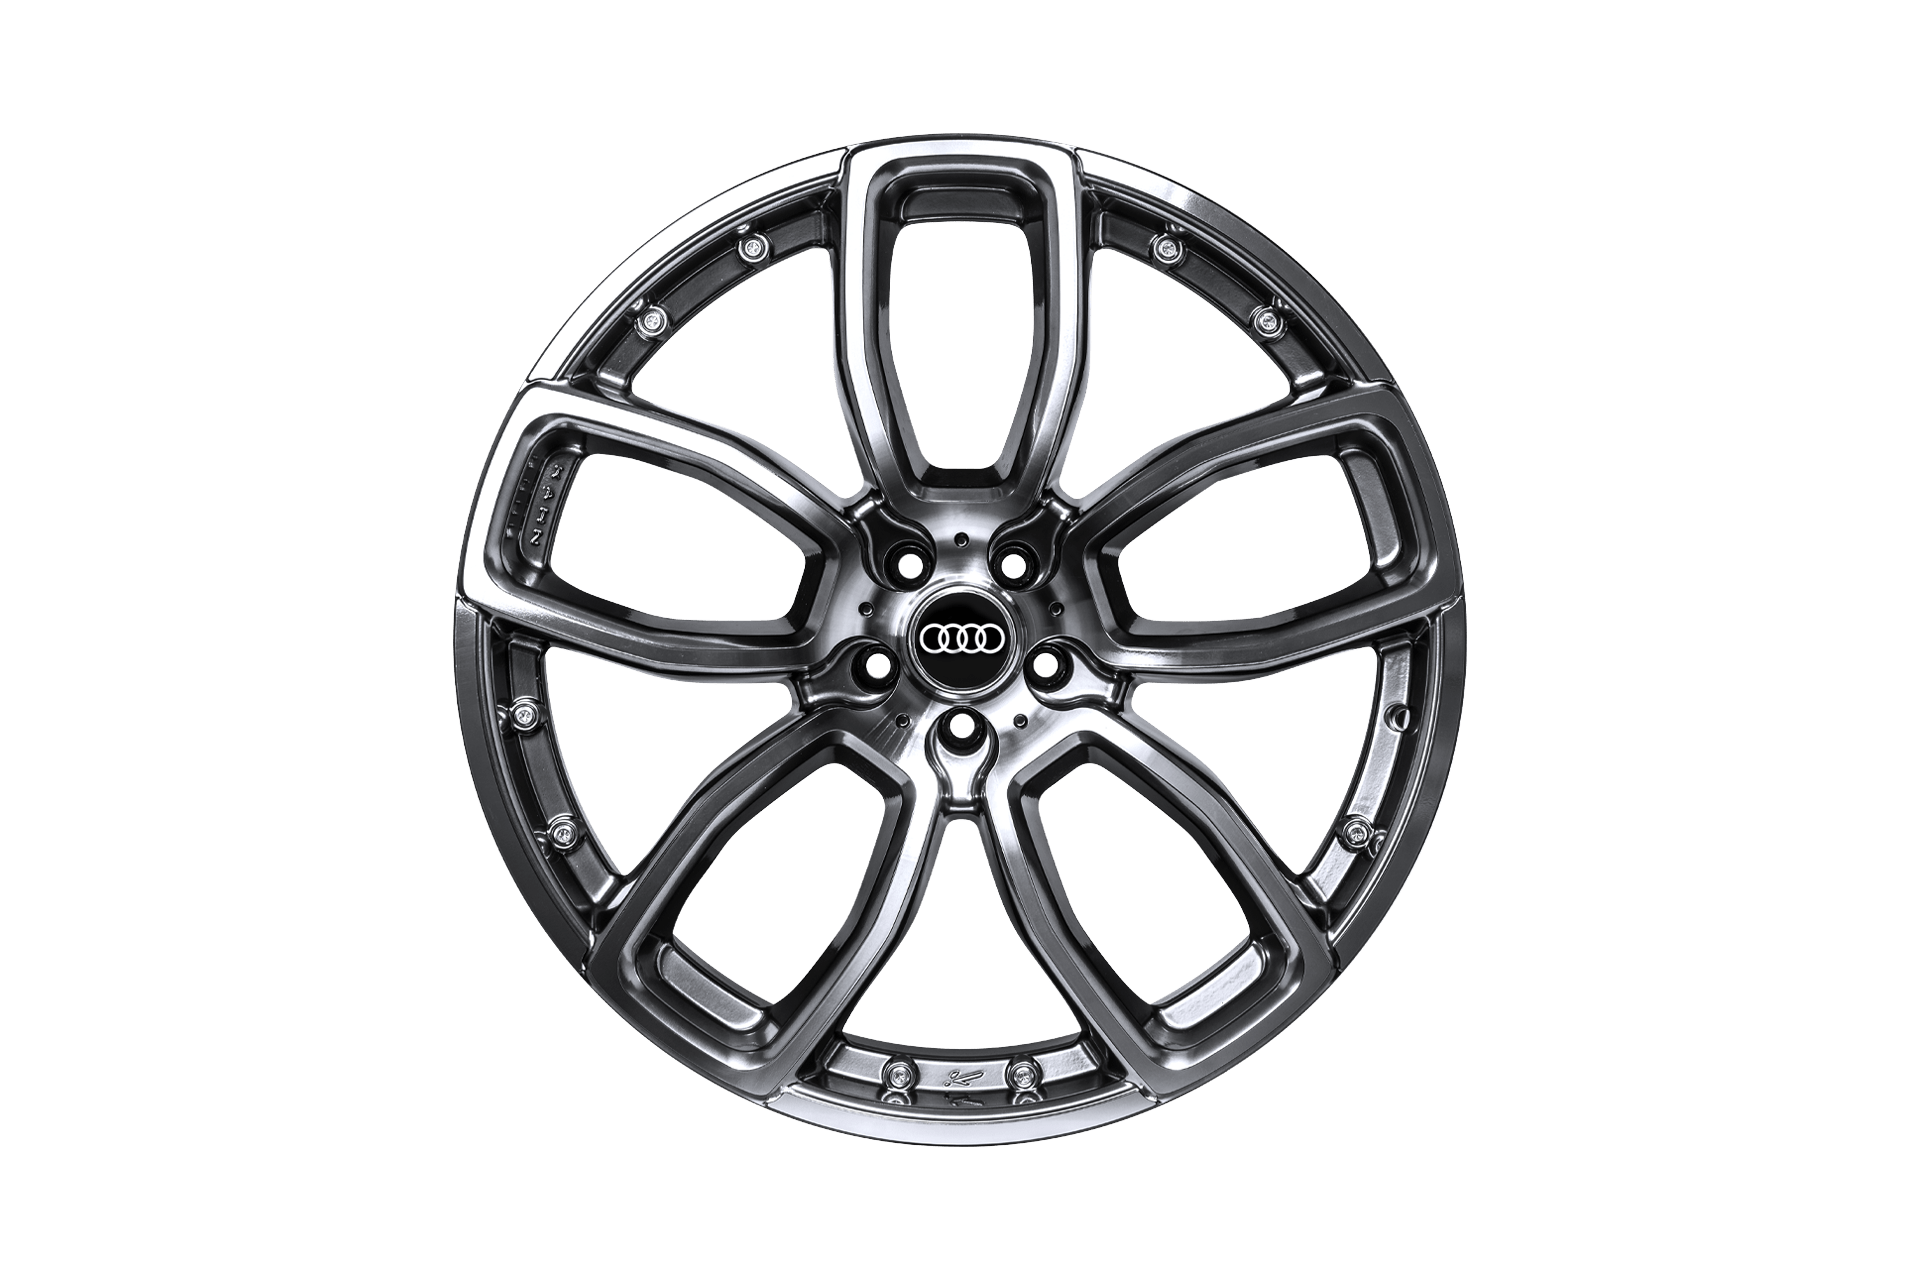 Audi A8 (2011-2017) 600Le Light Alloy Wheels by Kahn - Image 3036